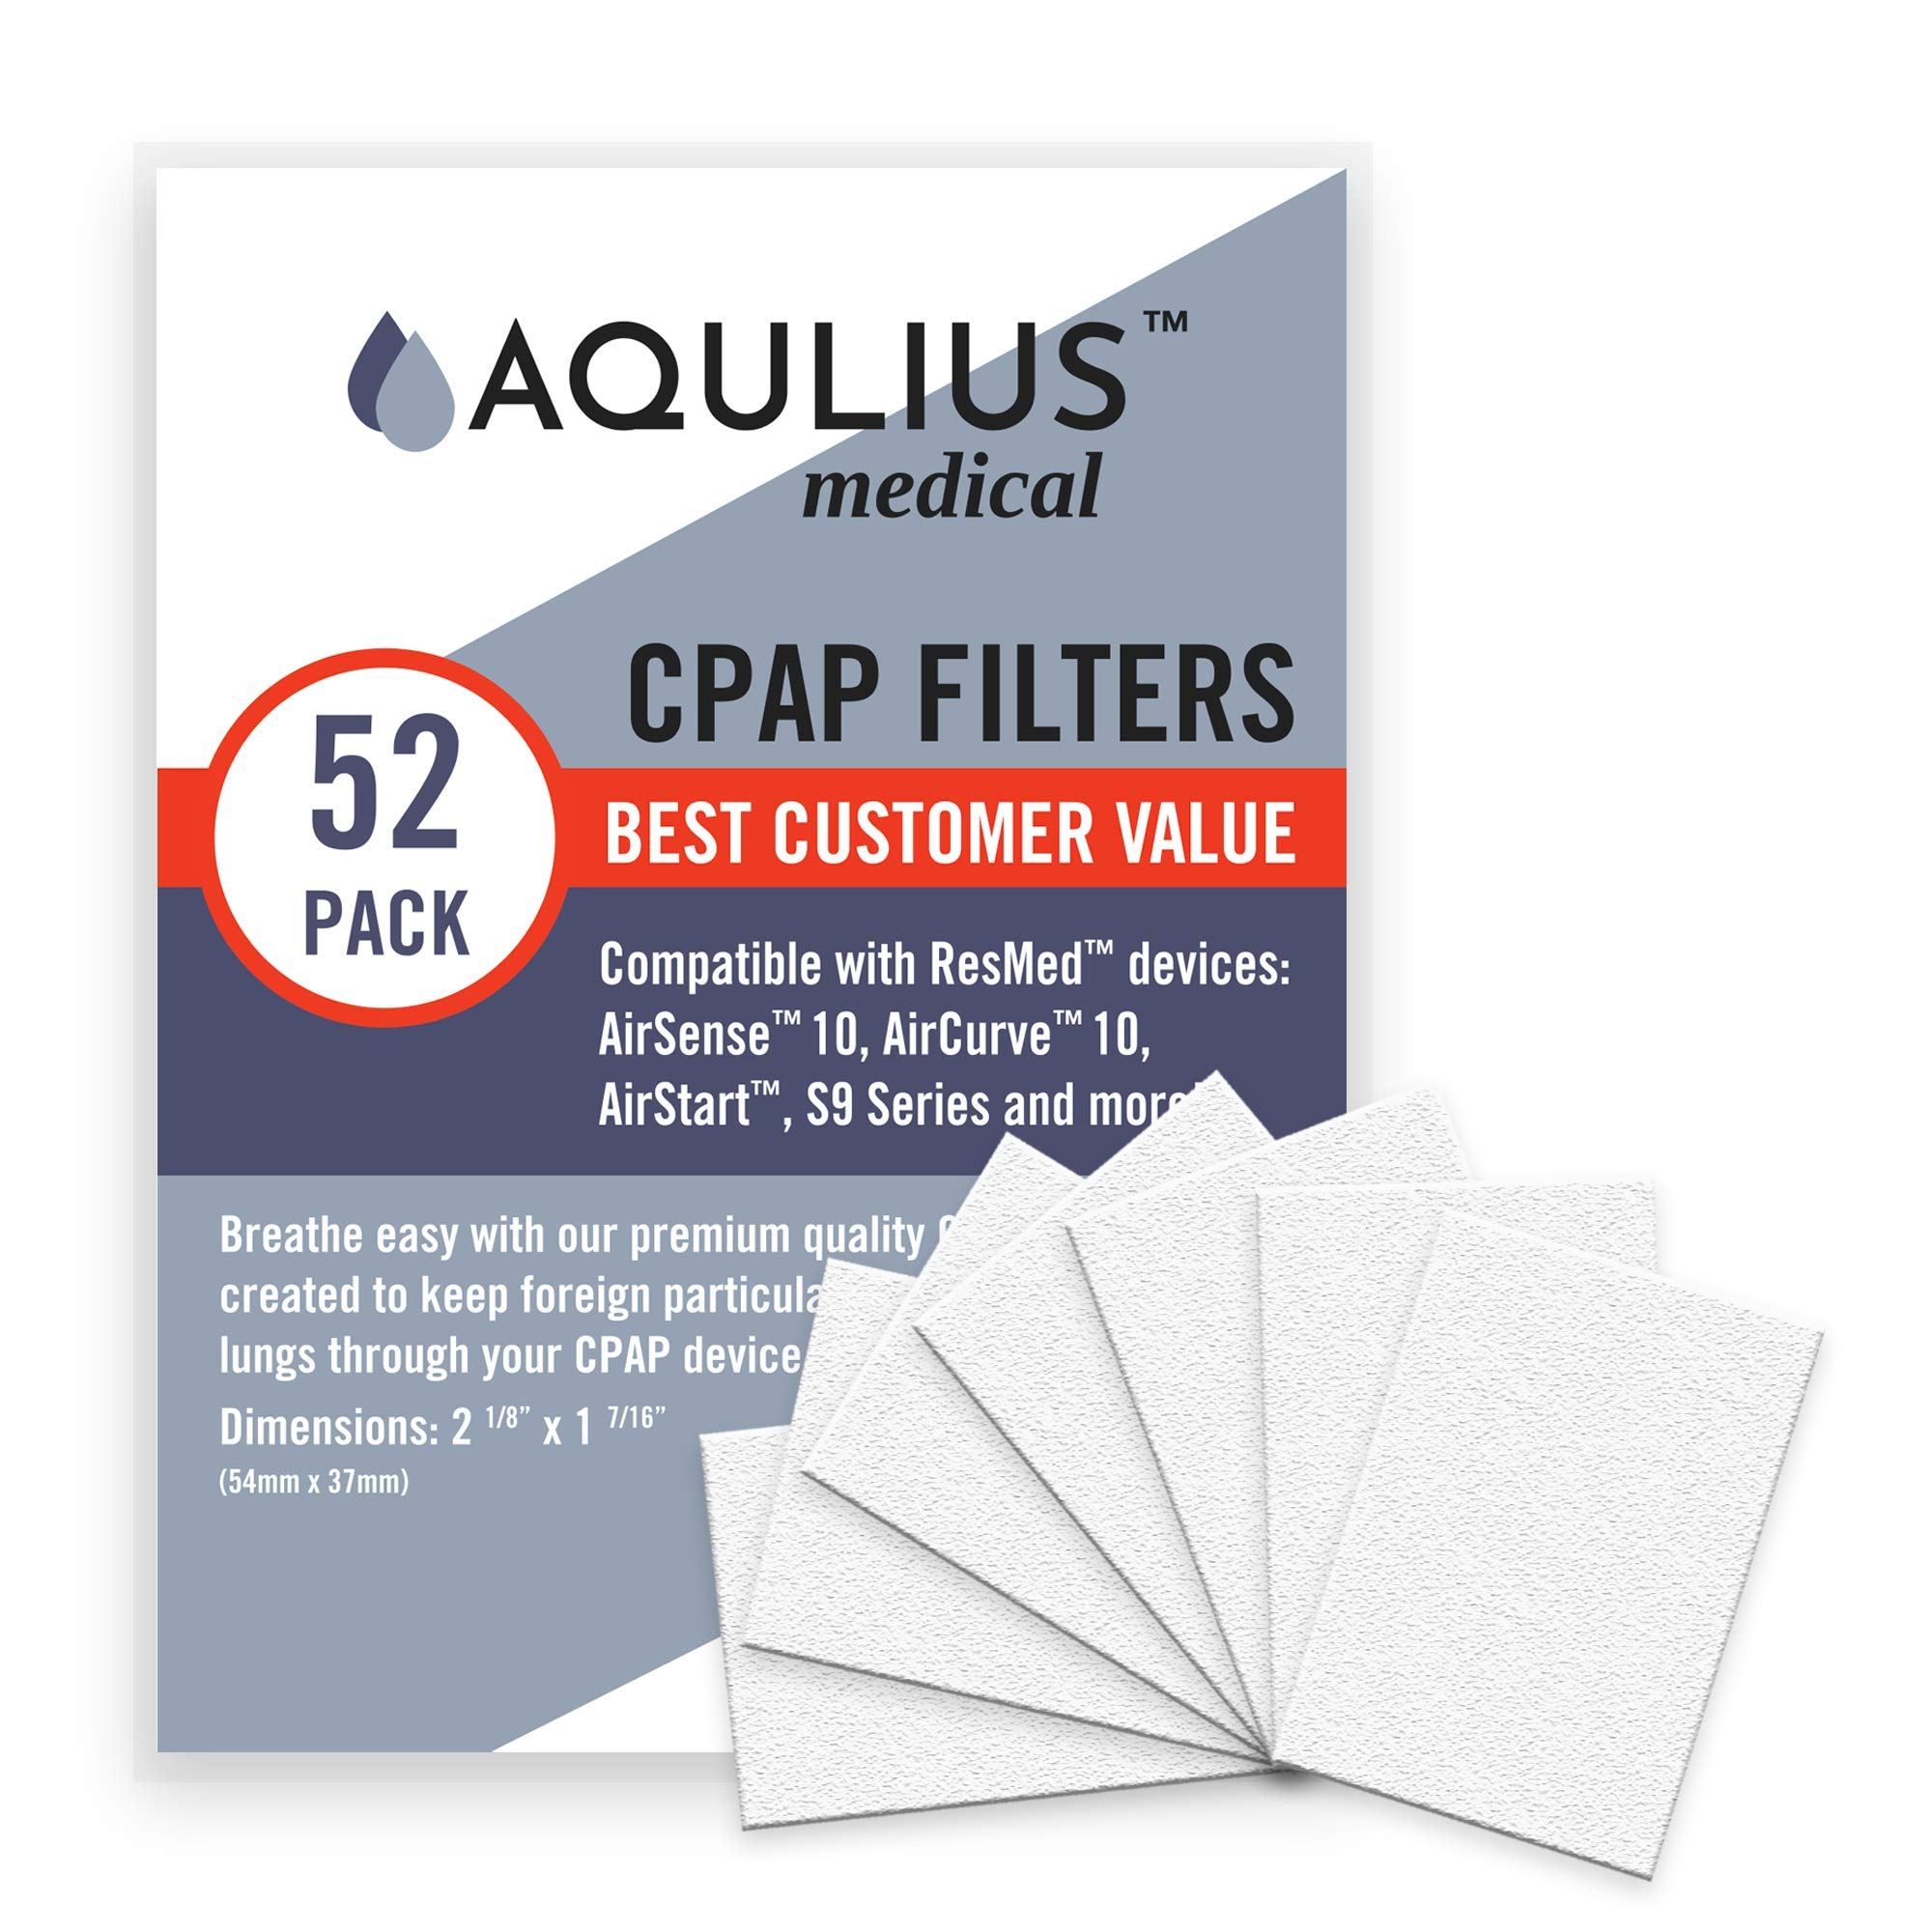 Disposable CPAP Filters (52 Pack - ONE Year Supply) - Fits All ResMed Air 10, Airsense 10, Aircurve 10, S9 Series, Airstart and More! by Aqulius